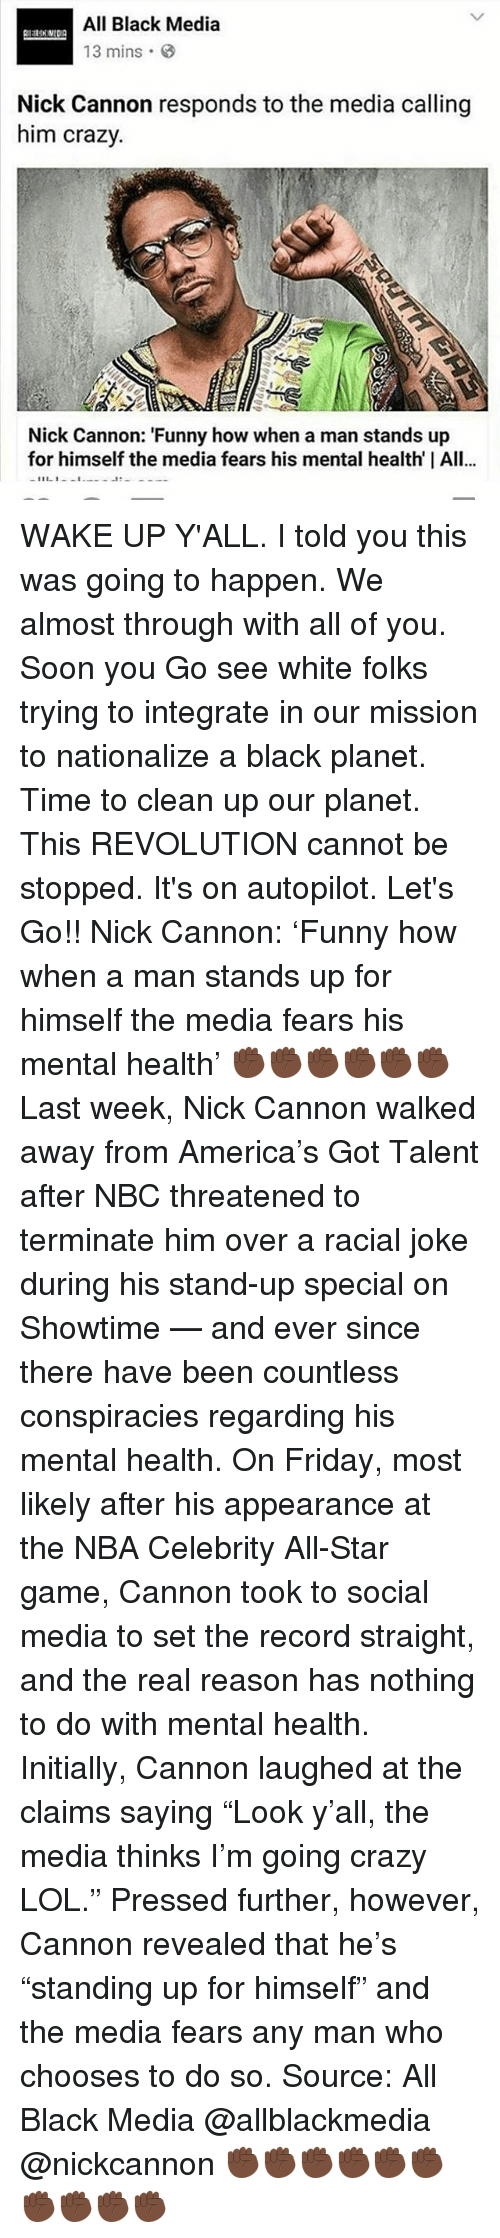 "nick cannon: All Black Media  13 mins  Nick Cannon responds to the media calling  him crazy.  Nick Cannon: ""Funny how when a man stands up  for himself the media fears his mental health I All...  11 1 WAKE UP Y'ALL. I told you this was going to happen. We almost through with all of you. Soon you Go see white folks trying to integrate in our mission to nationalize a black planet. Time to clean up our planet. This REVOLUTION cannot be stopped. It's on autopilot. Let's Go!! Nick Cannon: 'Funny how when a man stands up for himself the media fears his mental health' ✊🏿✊🏿✊🏿✊🏿✊🏿✊🏿 Last week, Nick Cannon walked away from America's Got Talent after NBC threatened to terminate him over a racial joke during his stand-up special on Showtime — and ever since there have been countless conspiracies regarding his mental health. On Friday, most likely after his appearance at the NBA Celebrity All-Star game, Cannon took to social media to set the record straight, and the real reason has nothing to do with mental health. Initially, Cannon laughed at the claims saying ""Look y'all, the media thinks I'm going crazy LOL."" Pressed further, however, Cannon revealed that he's ""standing up for himself"" and the media fears any man who chooses to do so. Source: All Black Media @allblackmedia @nickcannon ✊🏿✊🏿✊🏿✊🏿✊🏿✊🏿✊🏿✊🏿✊🏿✊🏿"